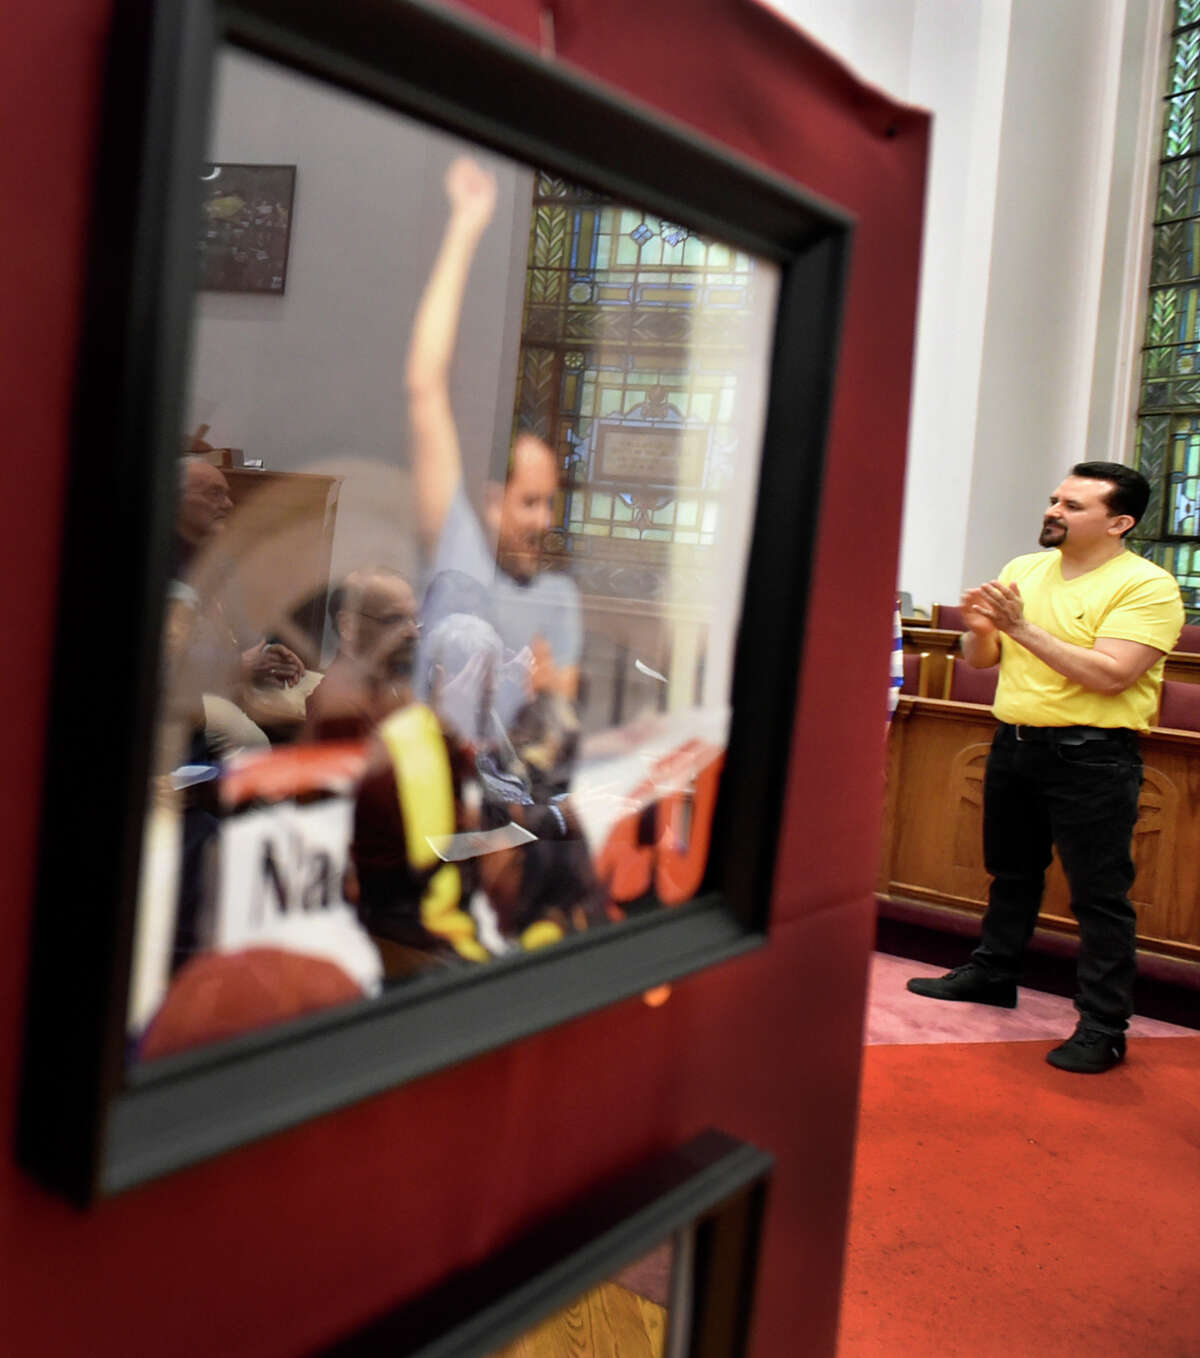 New Haven, Connecticut - Saturday, April 13, 2019: Nelson Pinos, an undocumented immigrant from Ecuador facing deportation, with his 500th day in sanctuary Saturday at the First and Summerfield Church in New Haven listens to a speaker during the opening of a photographic exhibition fundraising event Saturday evening for him and his family at the church.The photo exhibit documents Pinos, in sanctuary in New Haven since November 30, 2017, and Sujitno Sajuti, in sanctuary in Meriden since October 10. 2017. Pinos, a resident of New Haven, has lived in the U.S. since 1992. He is married and the father of three American citizen children